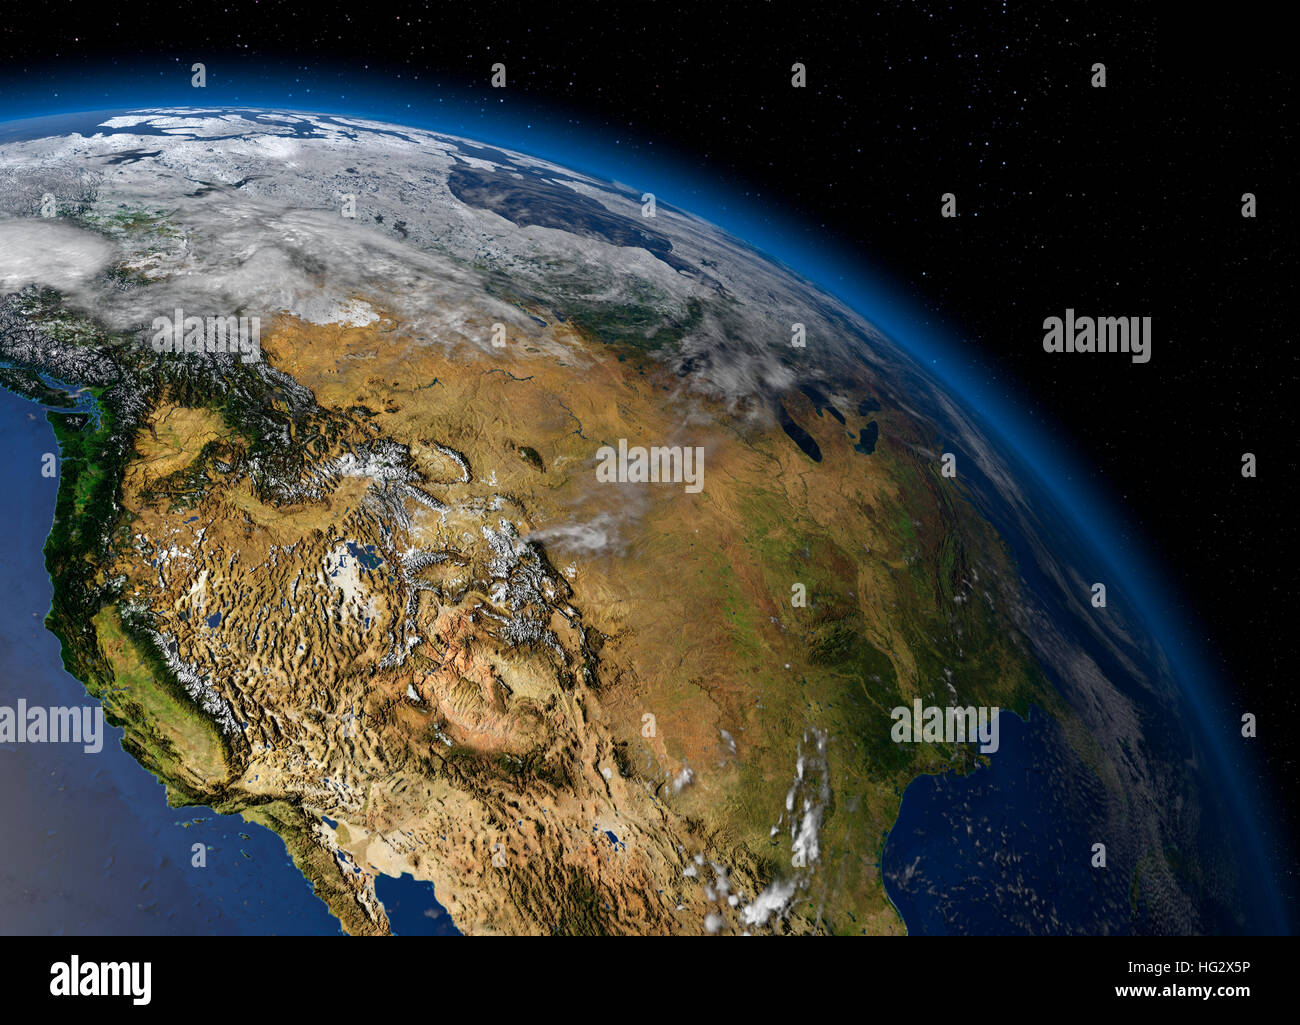 earth viewed from e showing the west coast of the united states realistic digital ilration including relief map hill shading of terrain plea